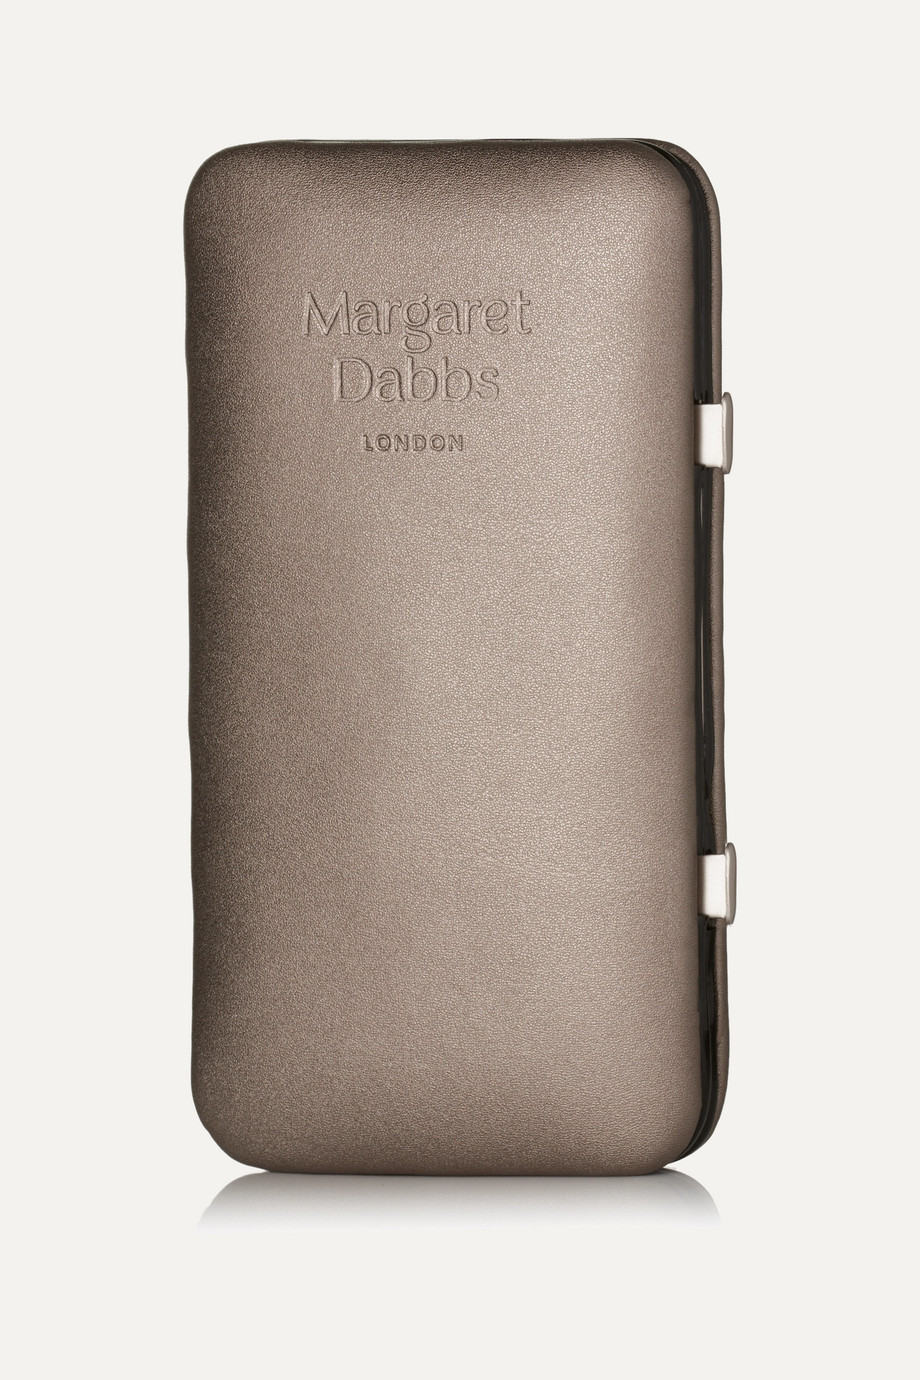 MARGARET DABBS LONDON Leather-Bound Manicure & Pedicure Set